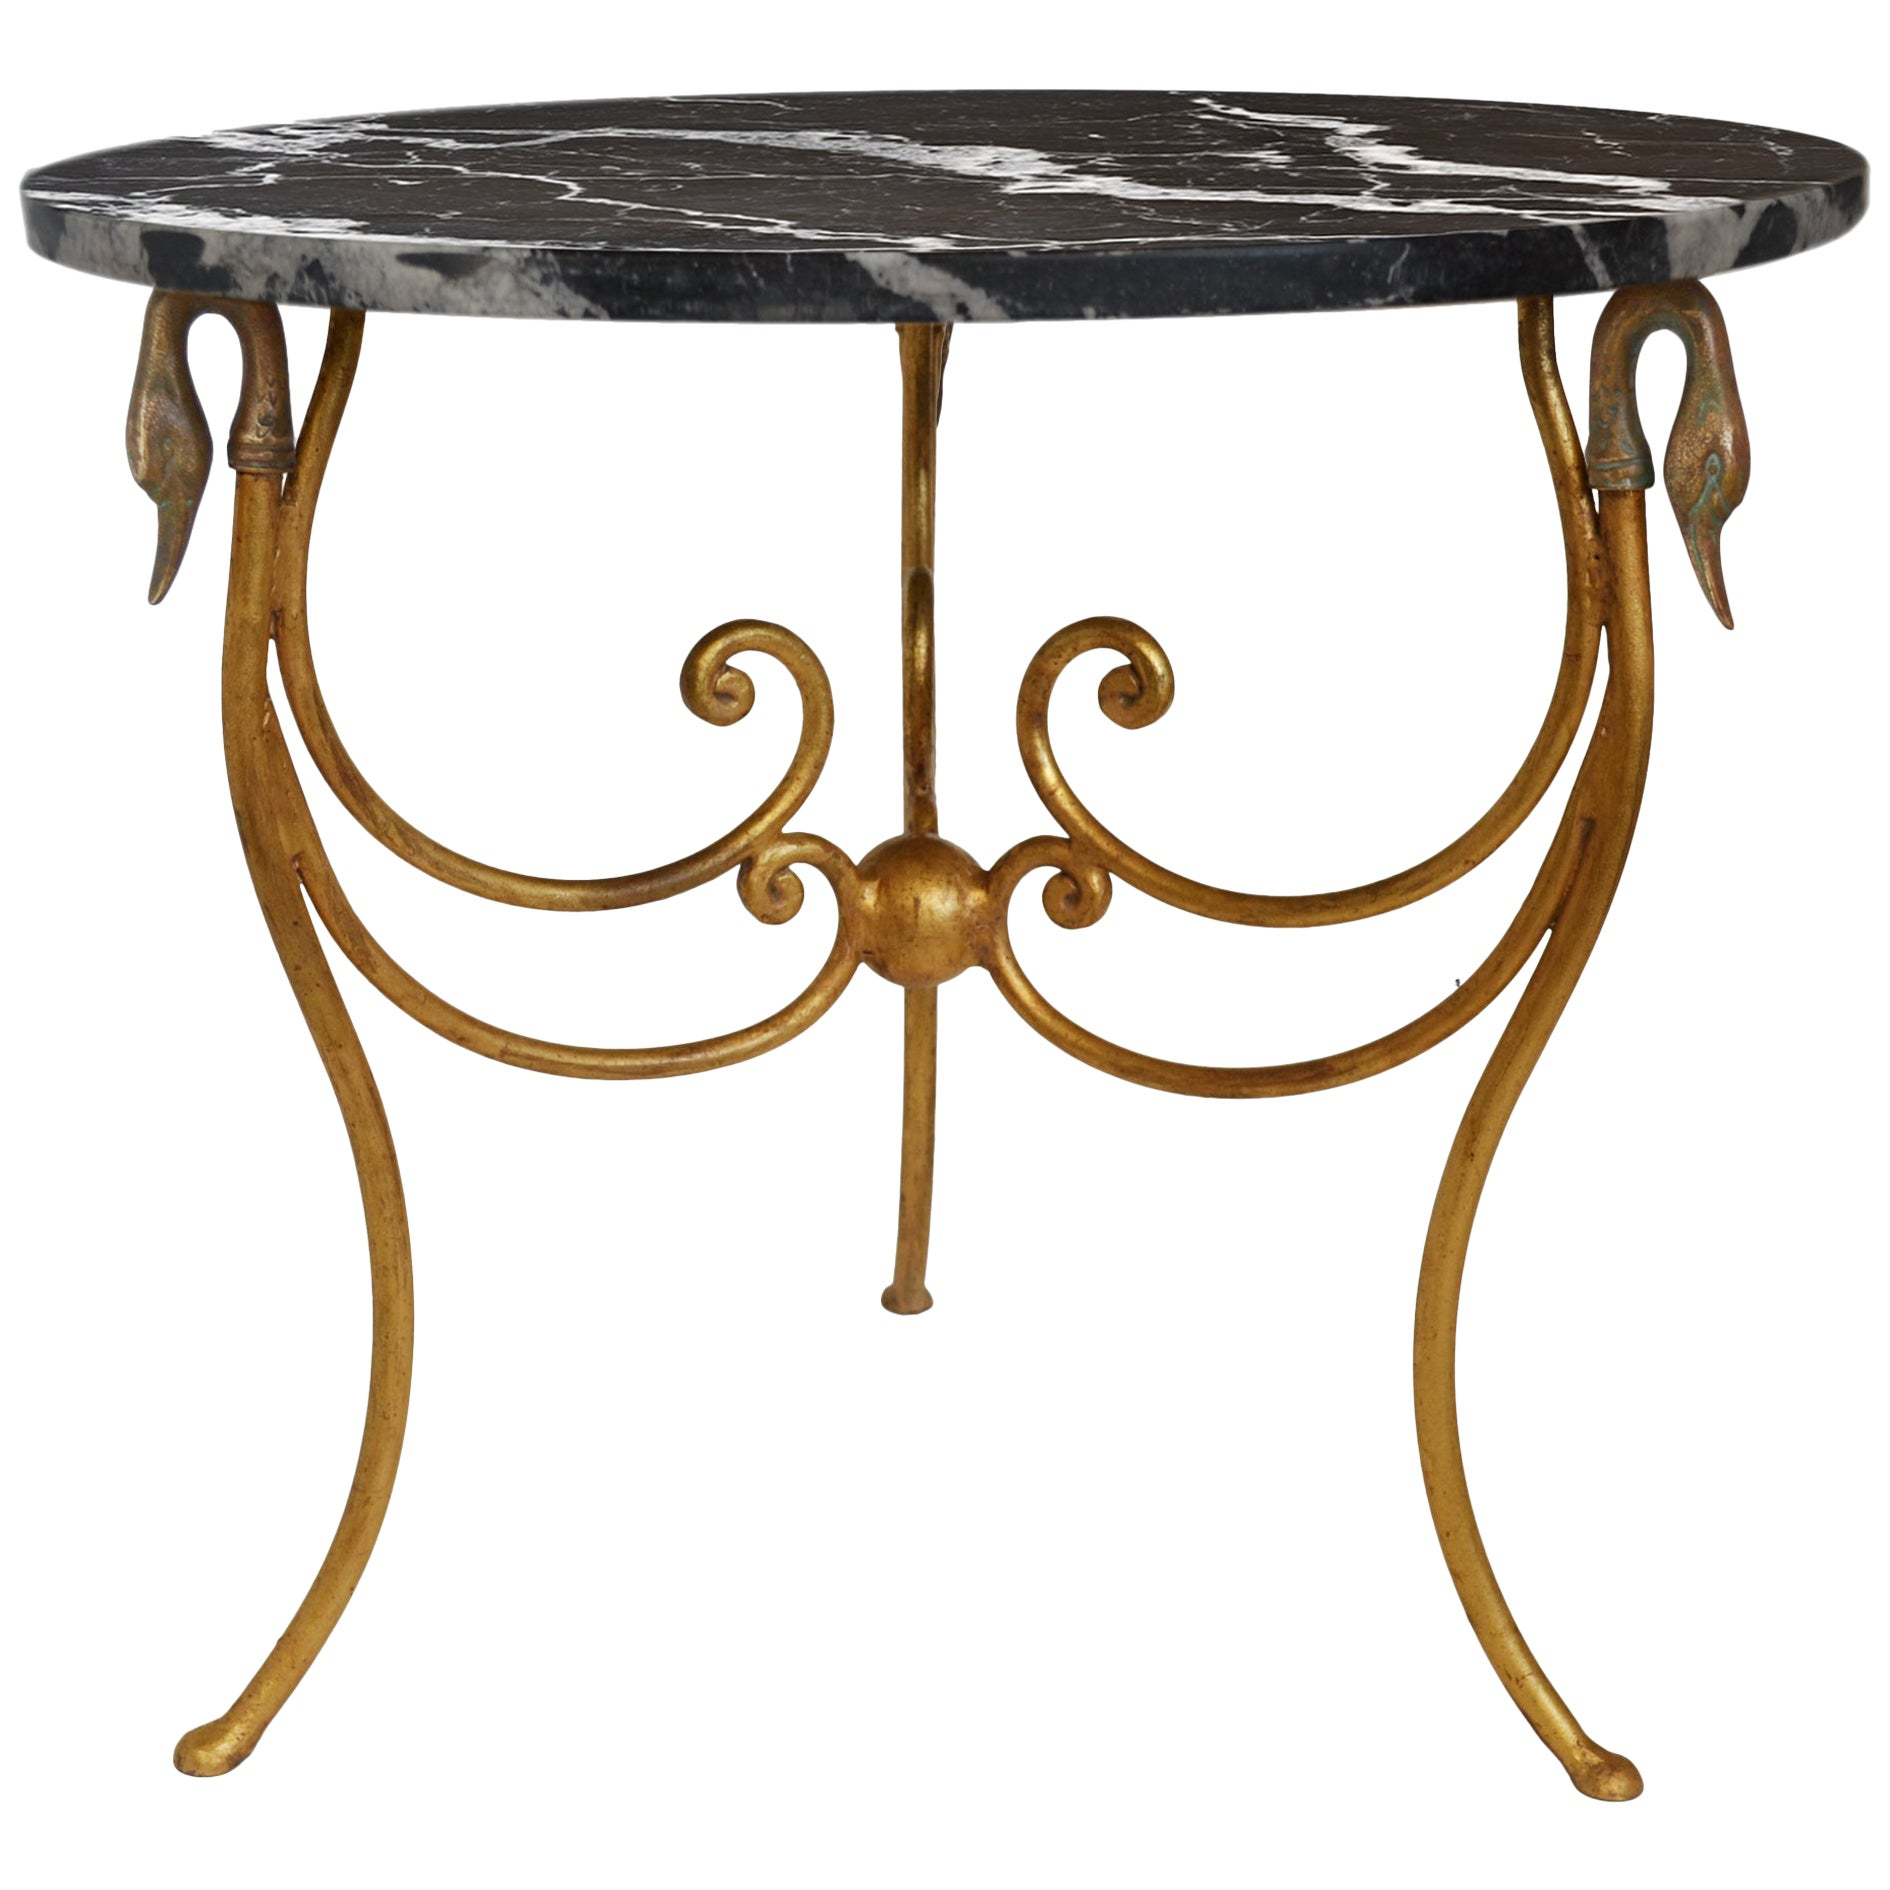 Black Side Table Black Marble-Top Iron Base Gold Leaf Finish handmade in Italy